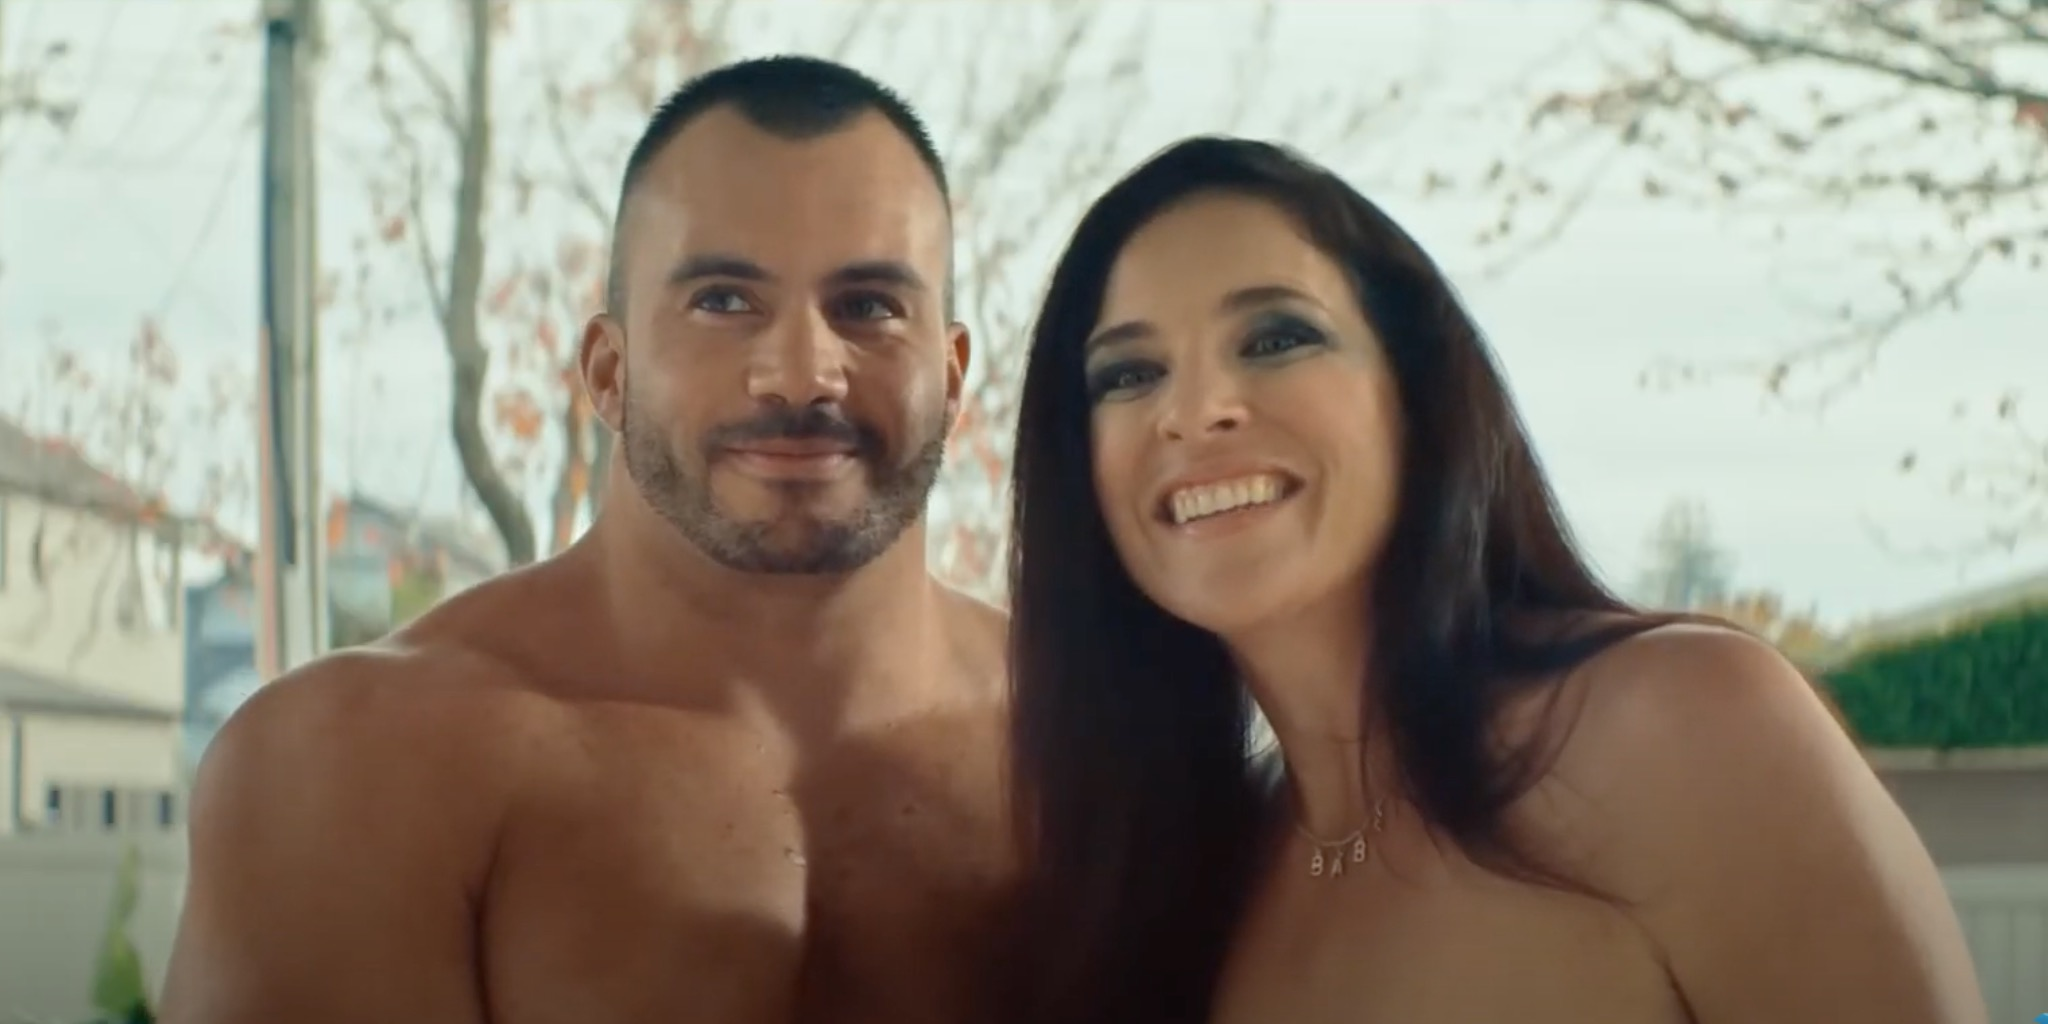 NZ on-line safety ads: a positive start to porn harms, grooming risks – with some reservations